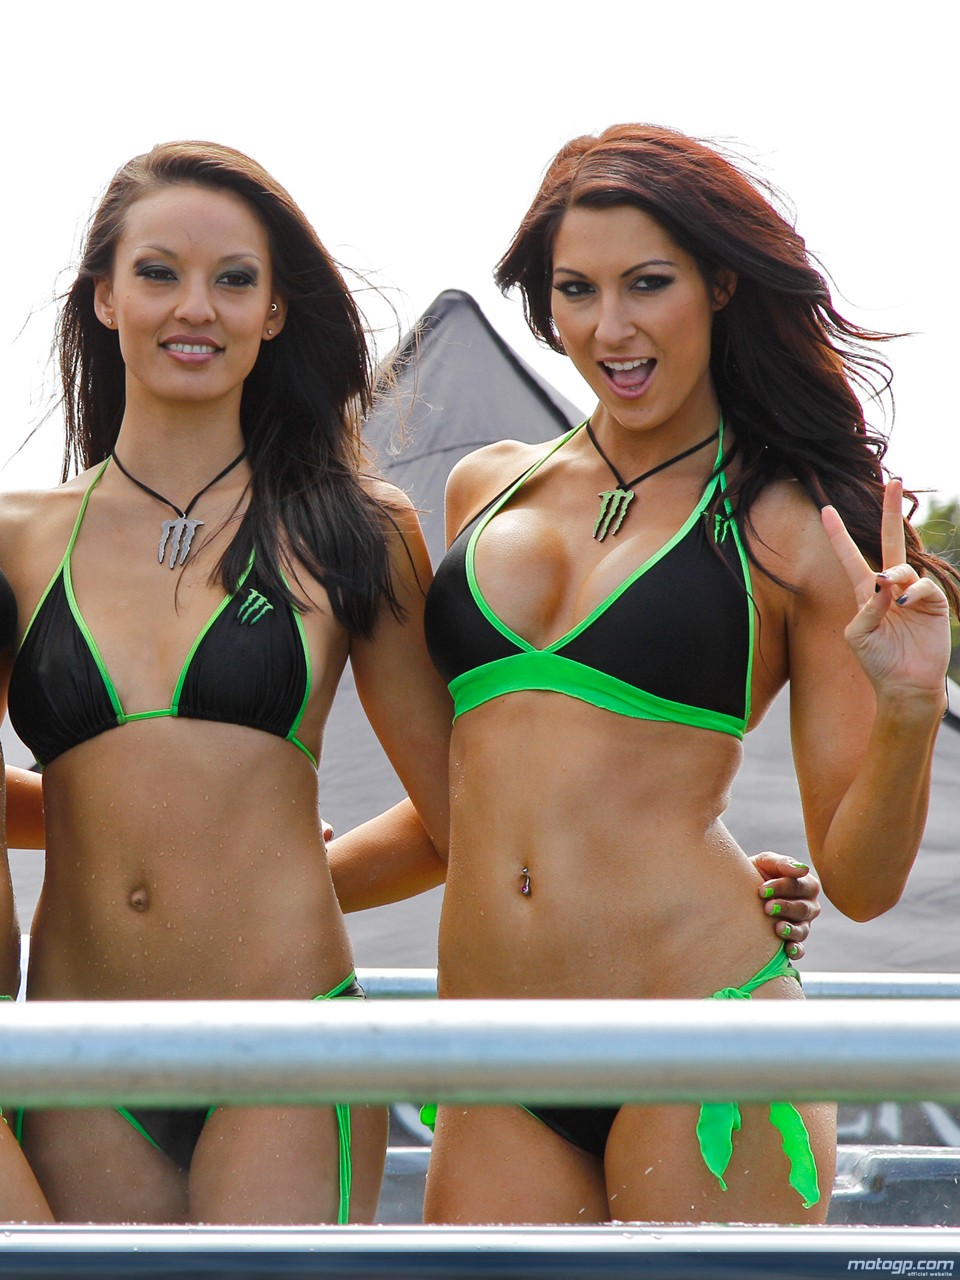 2148999 Motogp Australia Grid Girls in addition 2157861 Formula 1 Grid Girls further 2441399 European Auto Motor   Tuning Show 2014 additionally Single Din Stereos as well Auto Tech Reviews. on top car audio head units